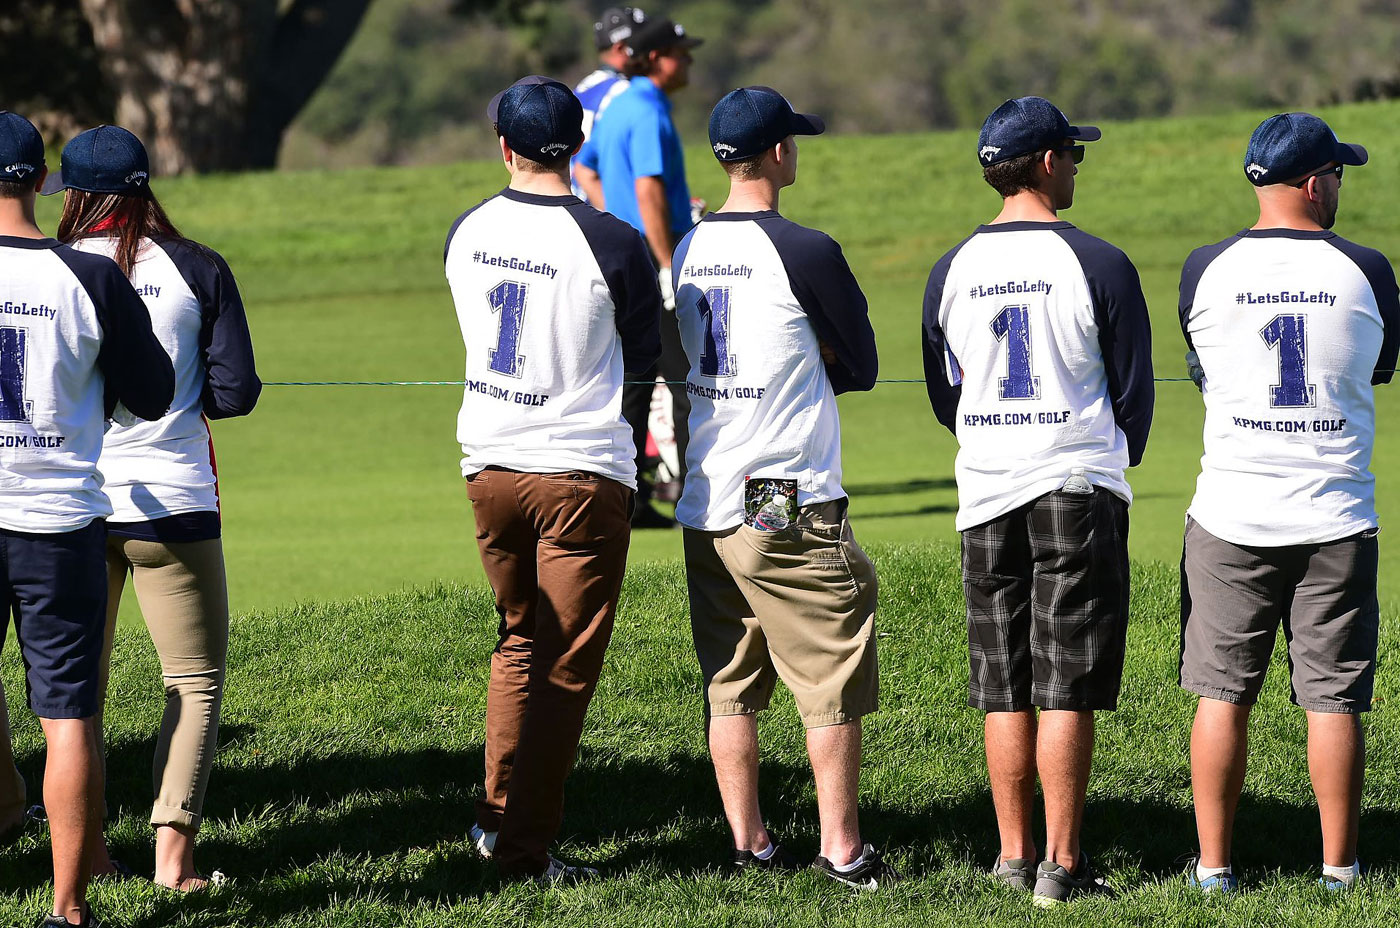 Phil Mickelson fans watch Lefty play the second round at Torrey Pines.